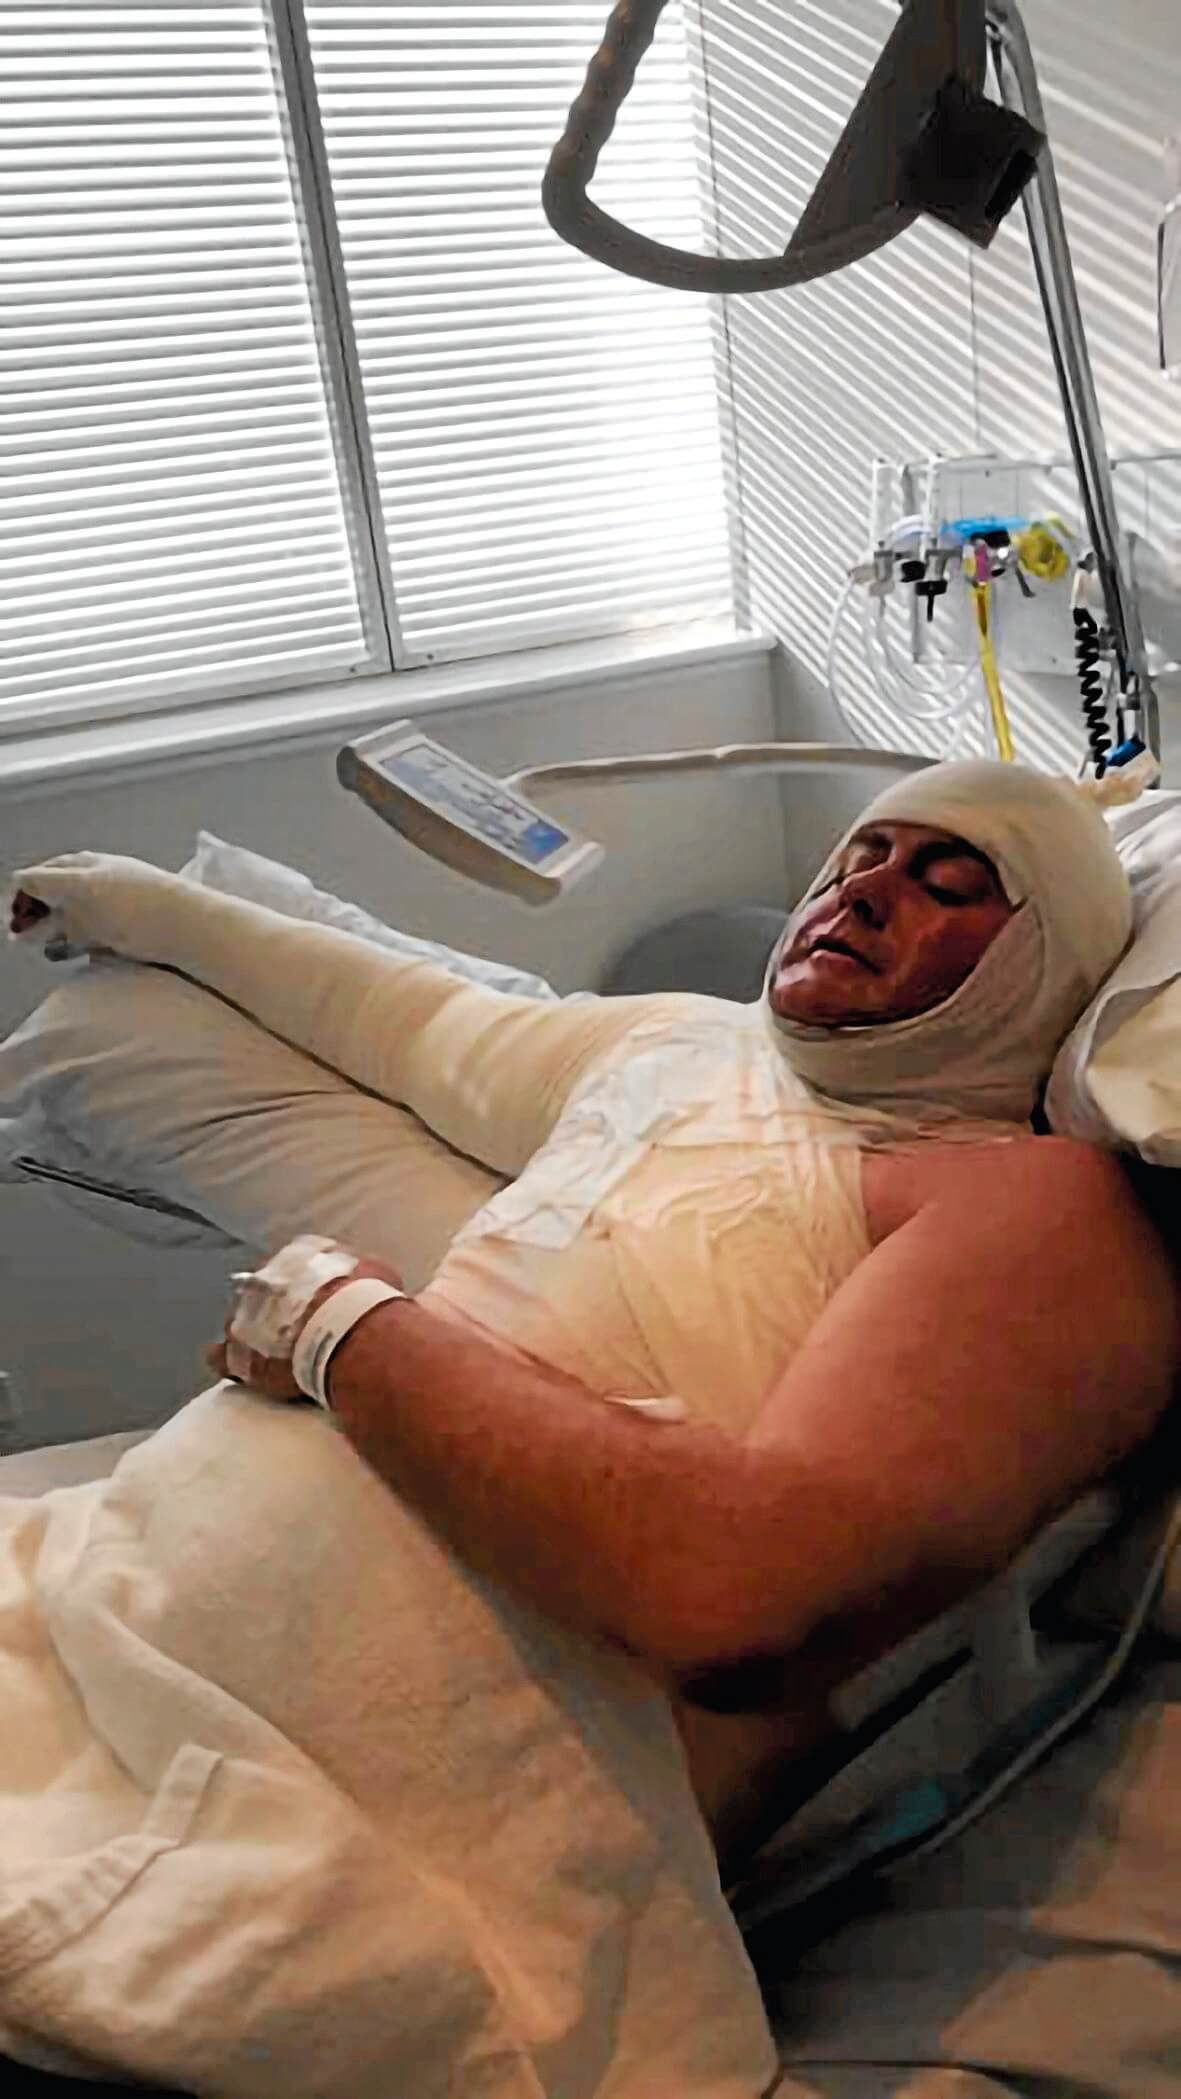 • Marcus Casey is recovering in the Royal Hobart Hospital from second and third degree burns to his body after an accident on Sunday afternoon.